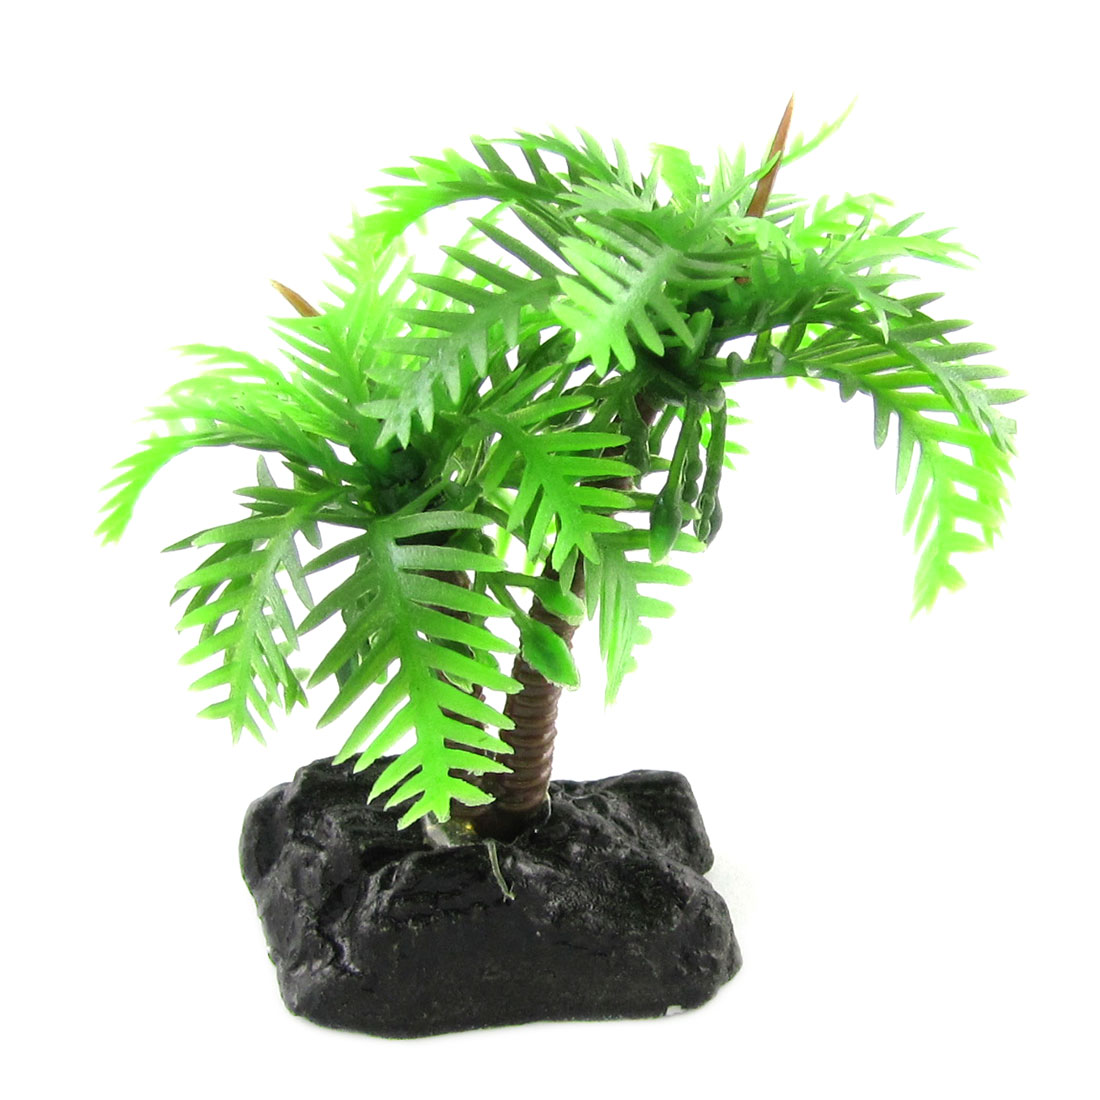 Fish Aquarium Coconut Tree Style Plastic Plant Ornament Decor